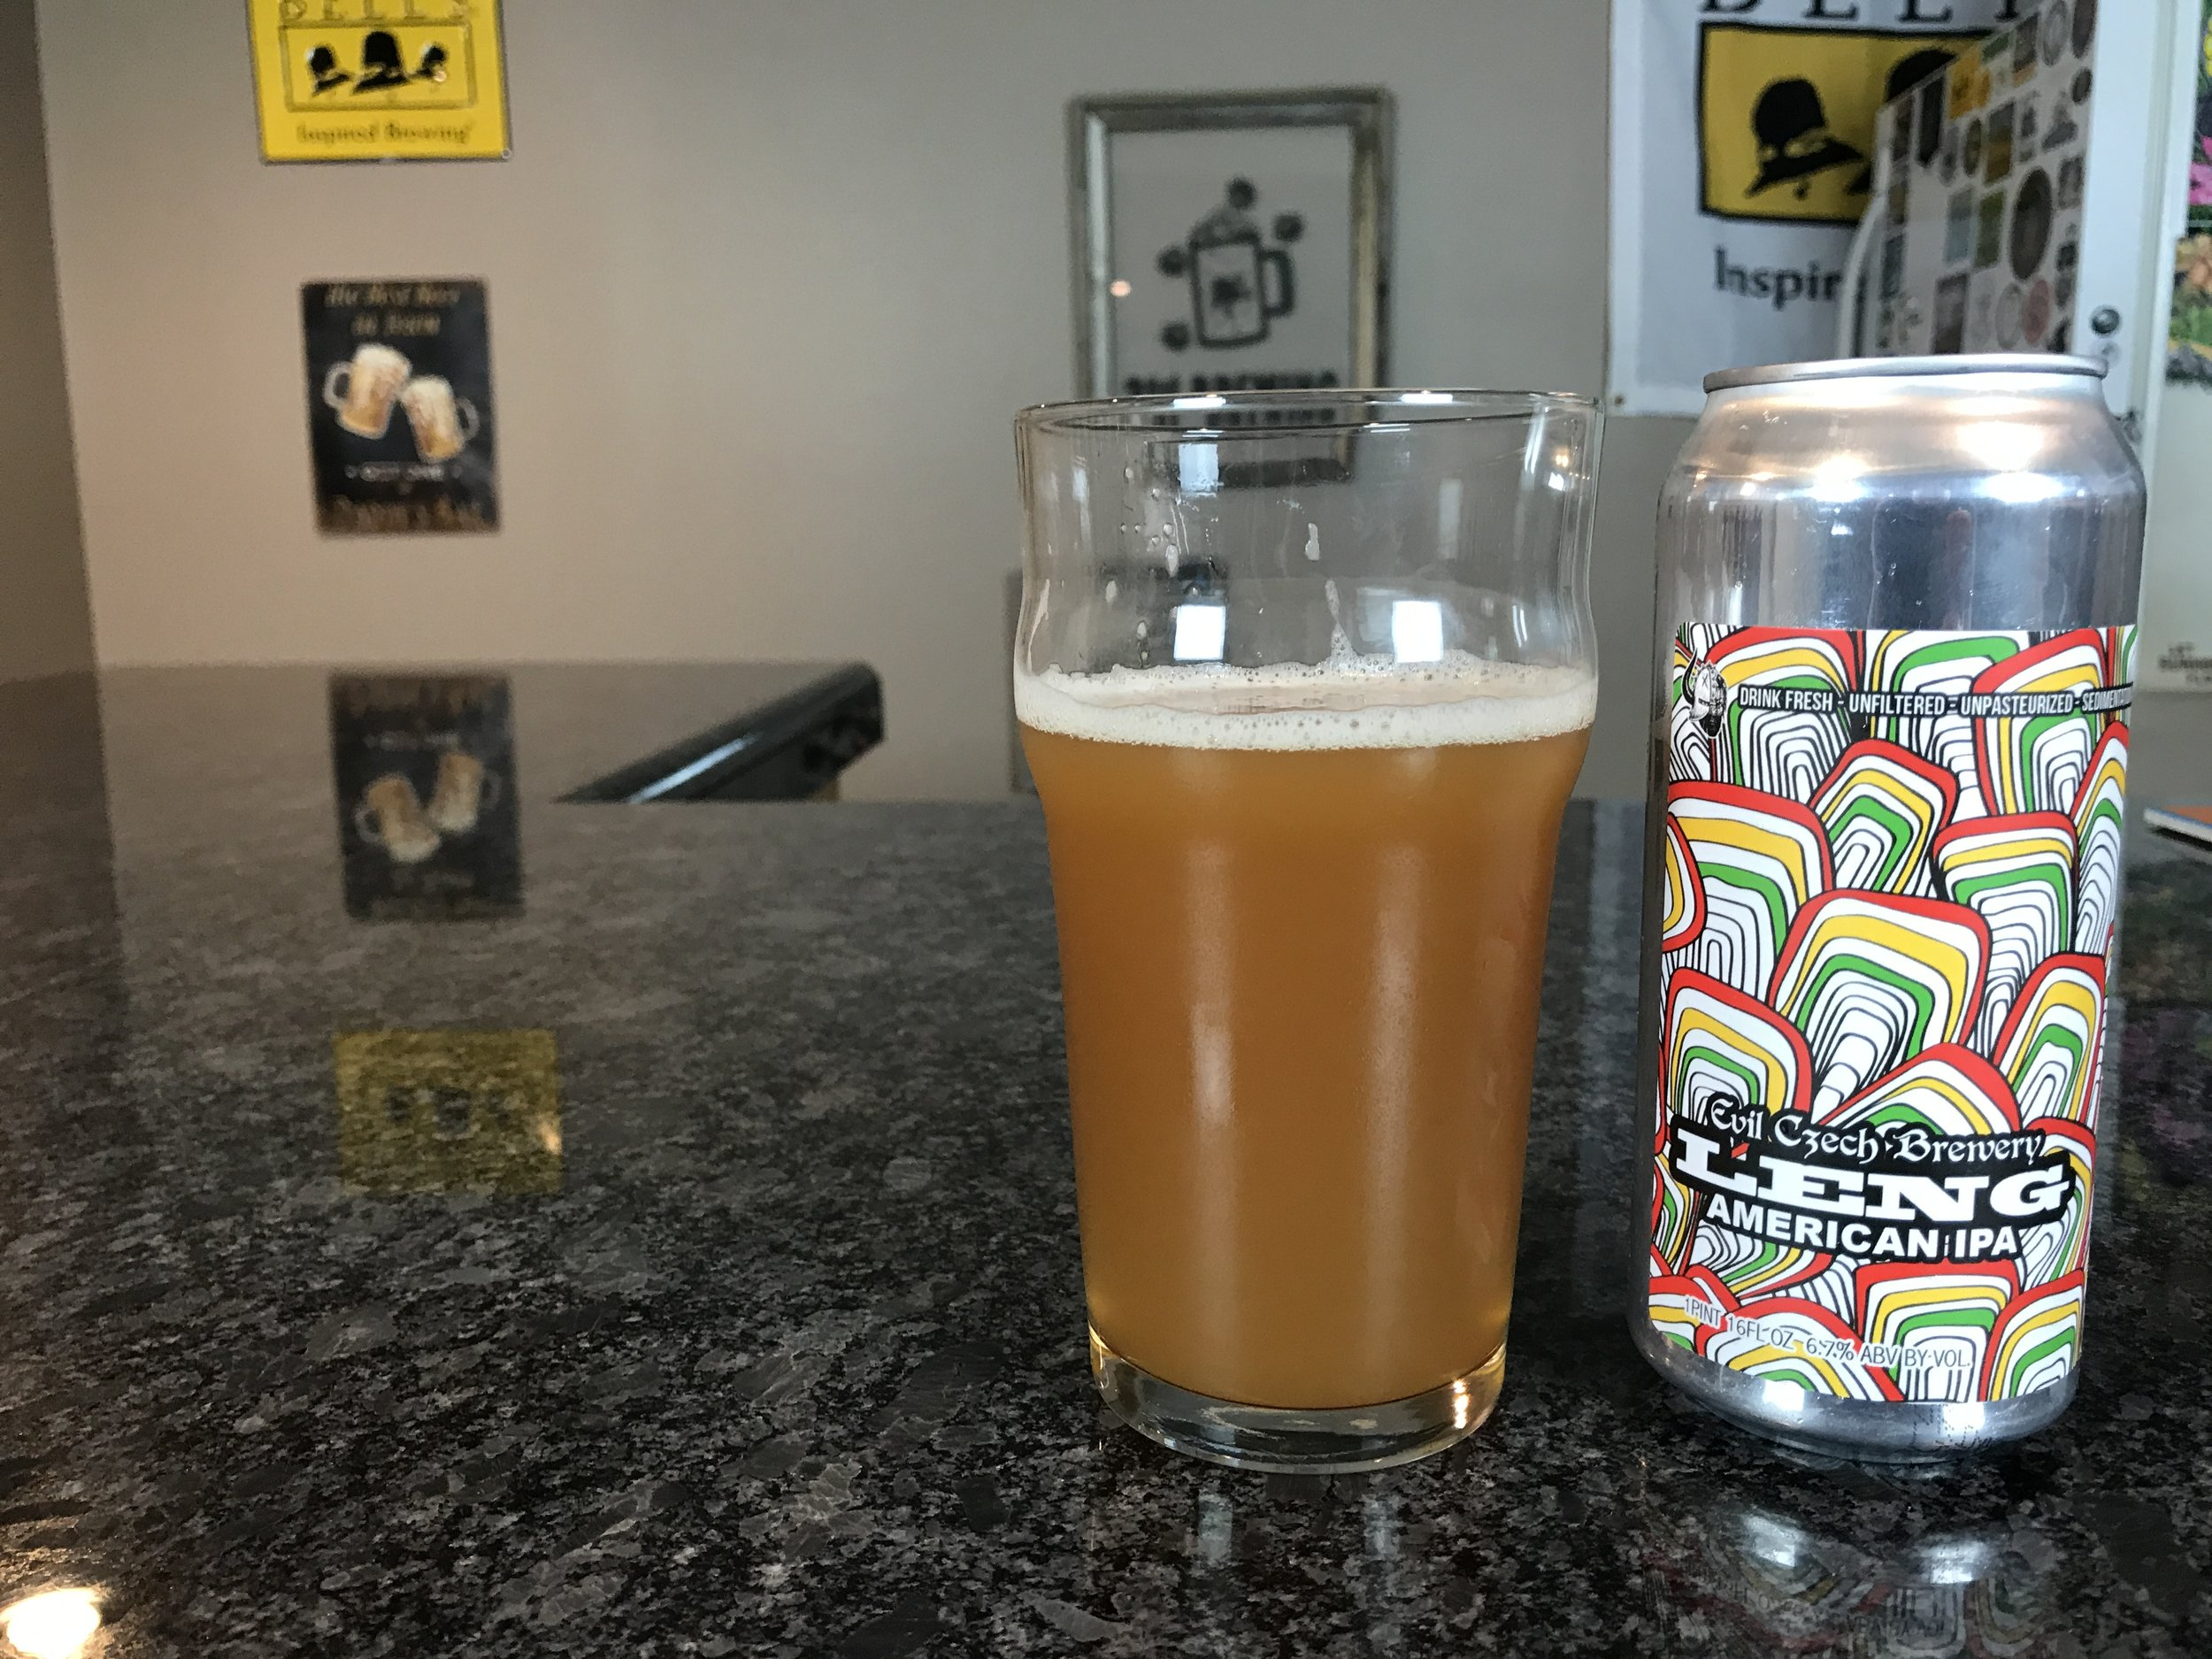 LENG 6.7% ABV 15 IBUs - Want to see the Video review? Click on the image.